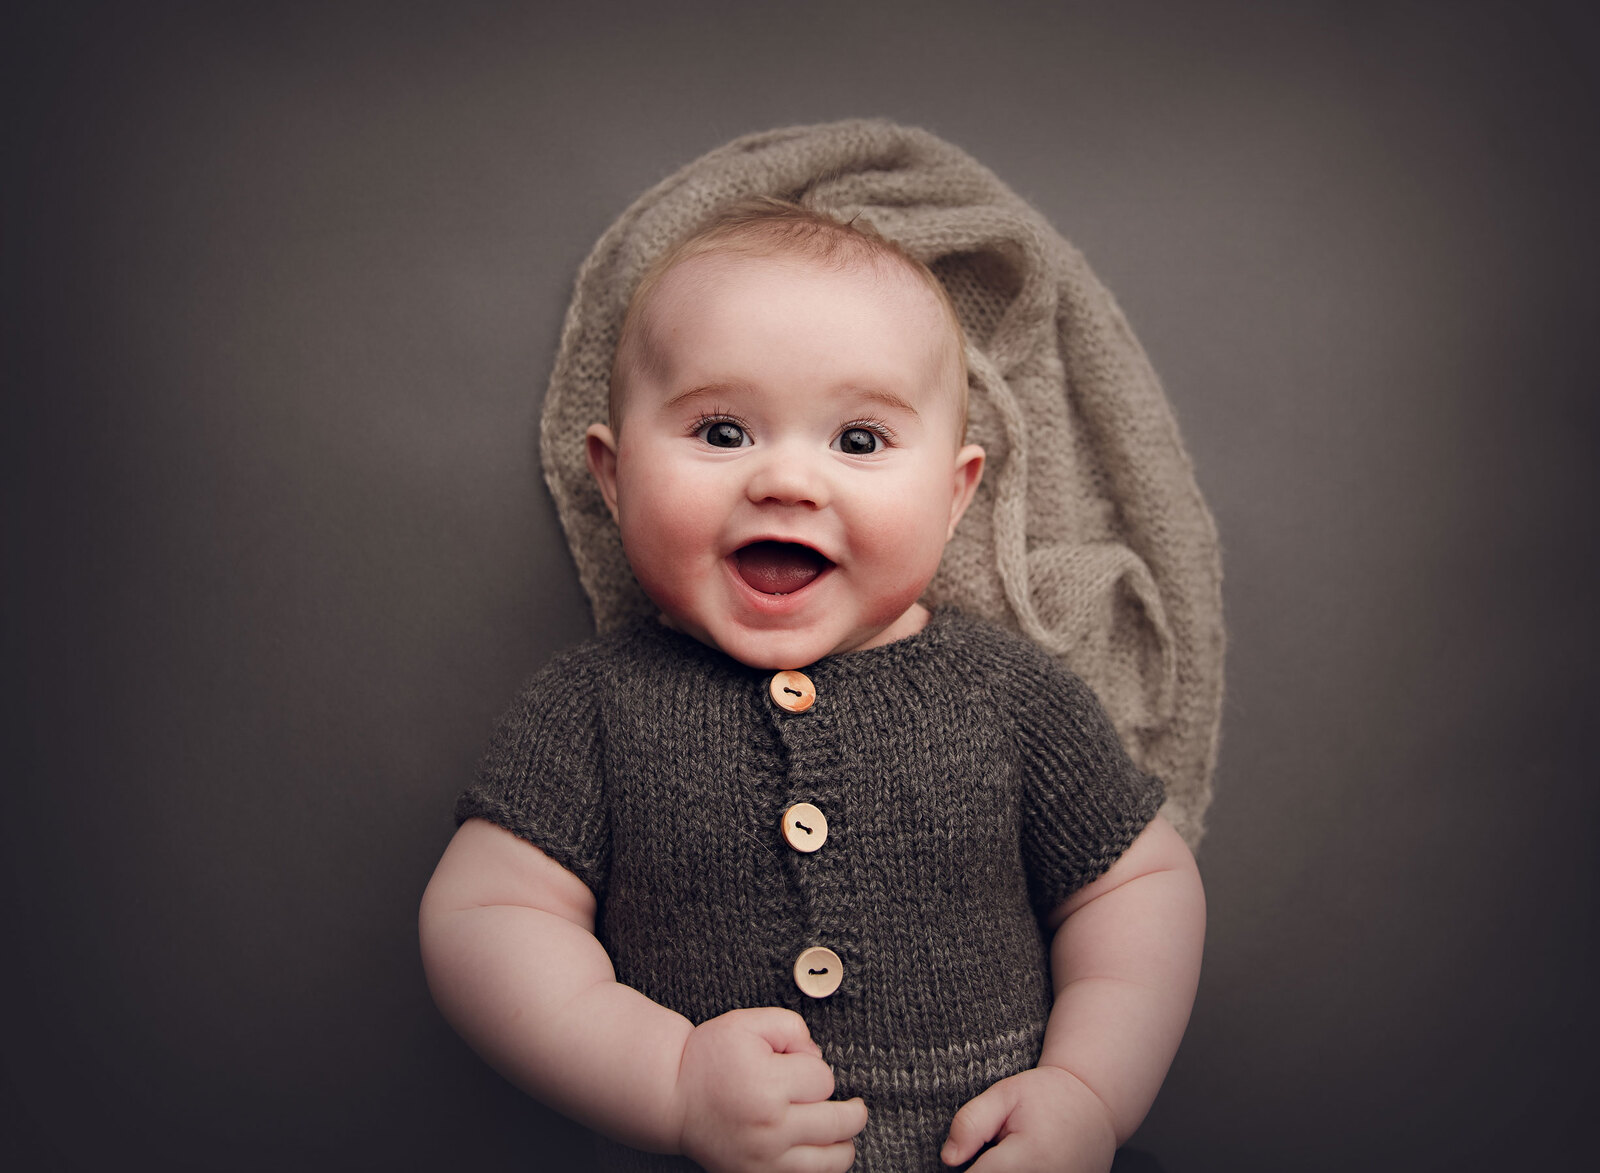 6 month old baby boy smiling